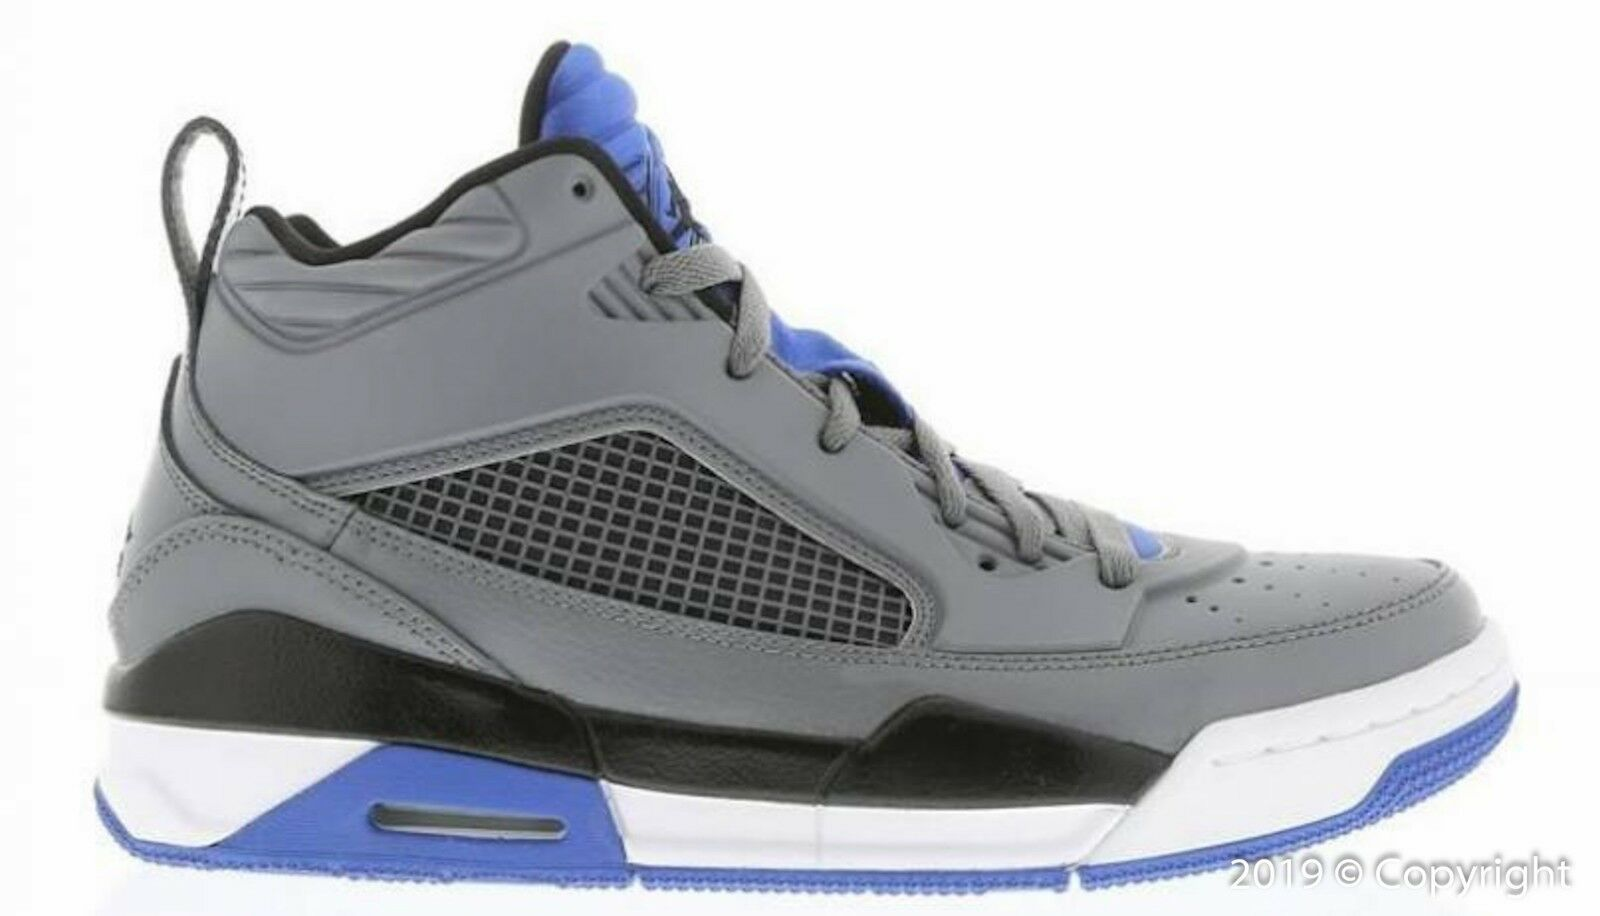 Men's Air Jordan Flight 9.5 Cool Grey Black Premium shoes